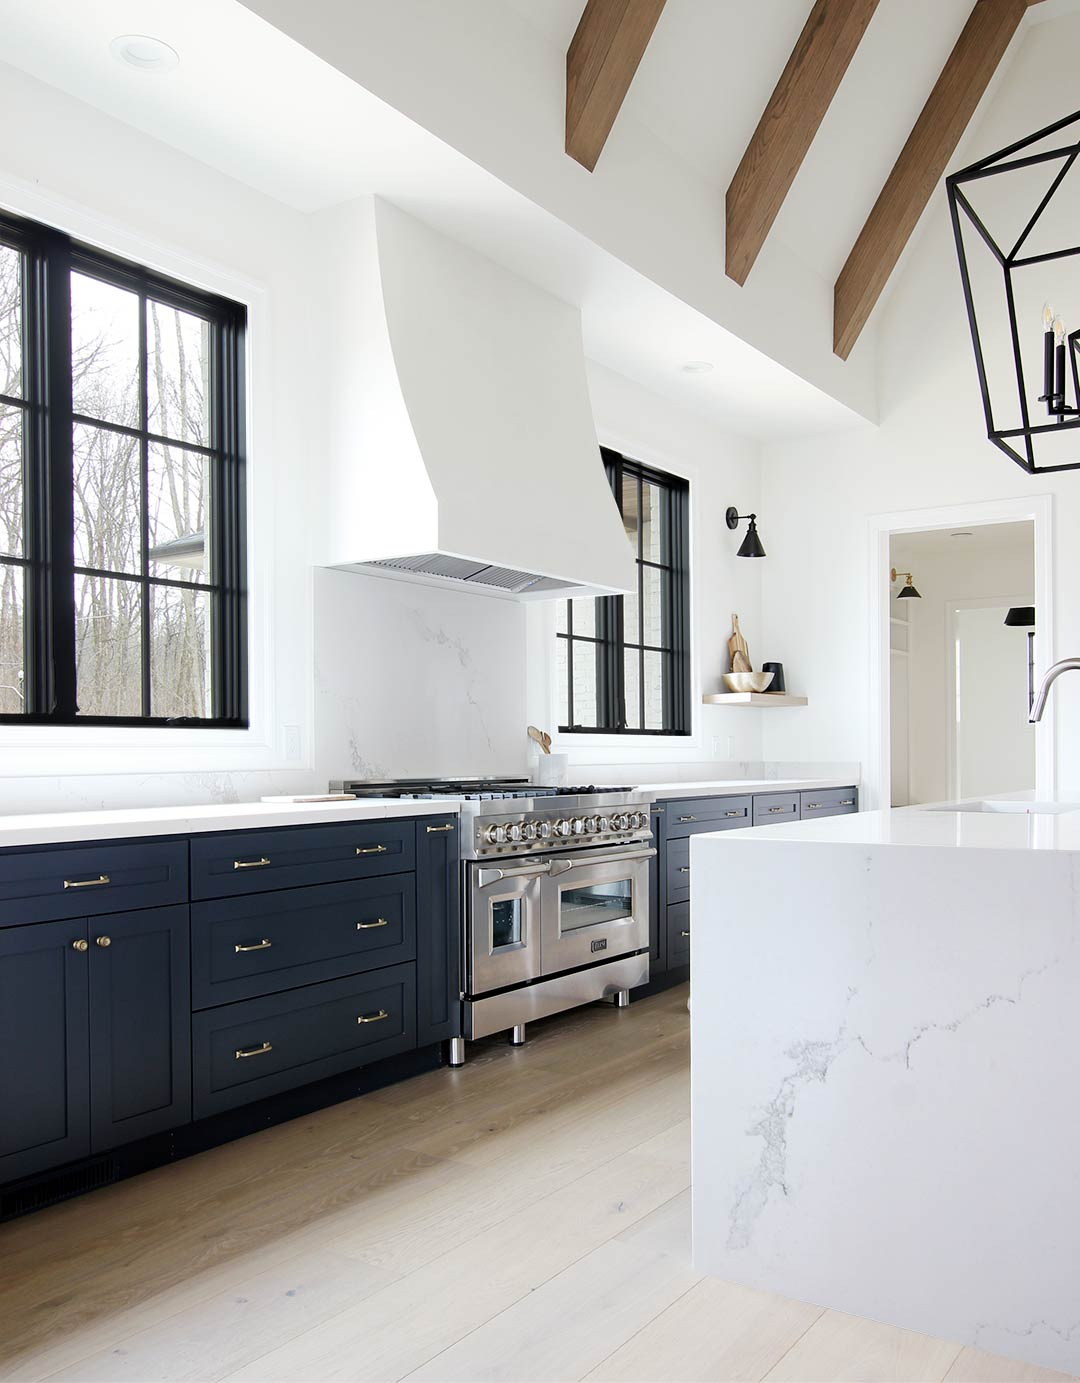 - How To Build A Plaster Range Hood - Plank And Pillow